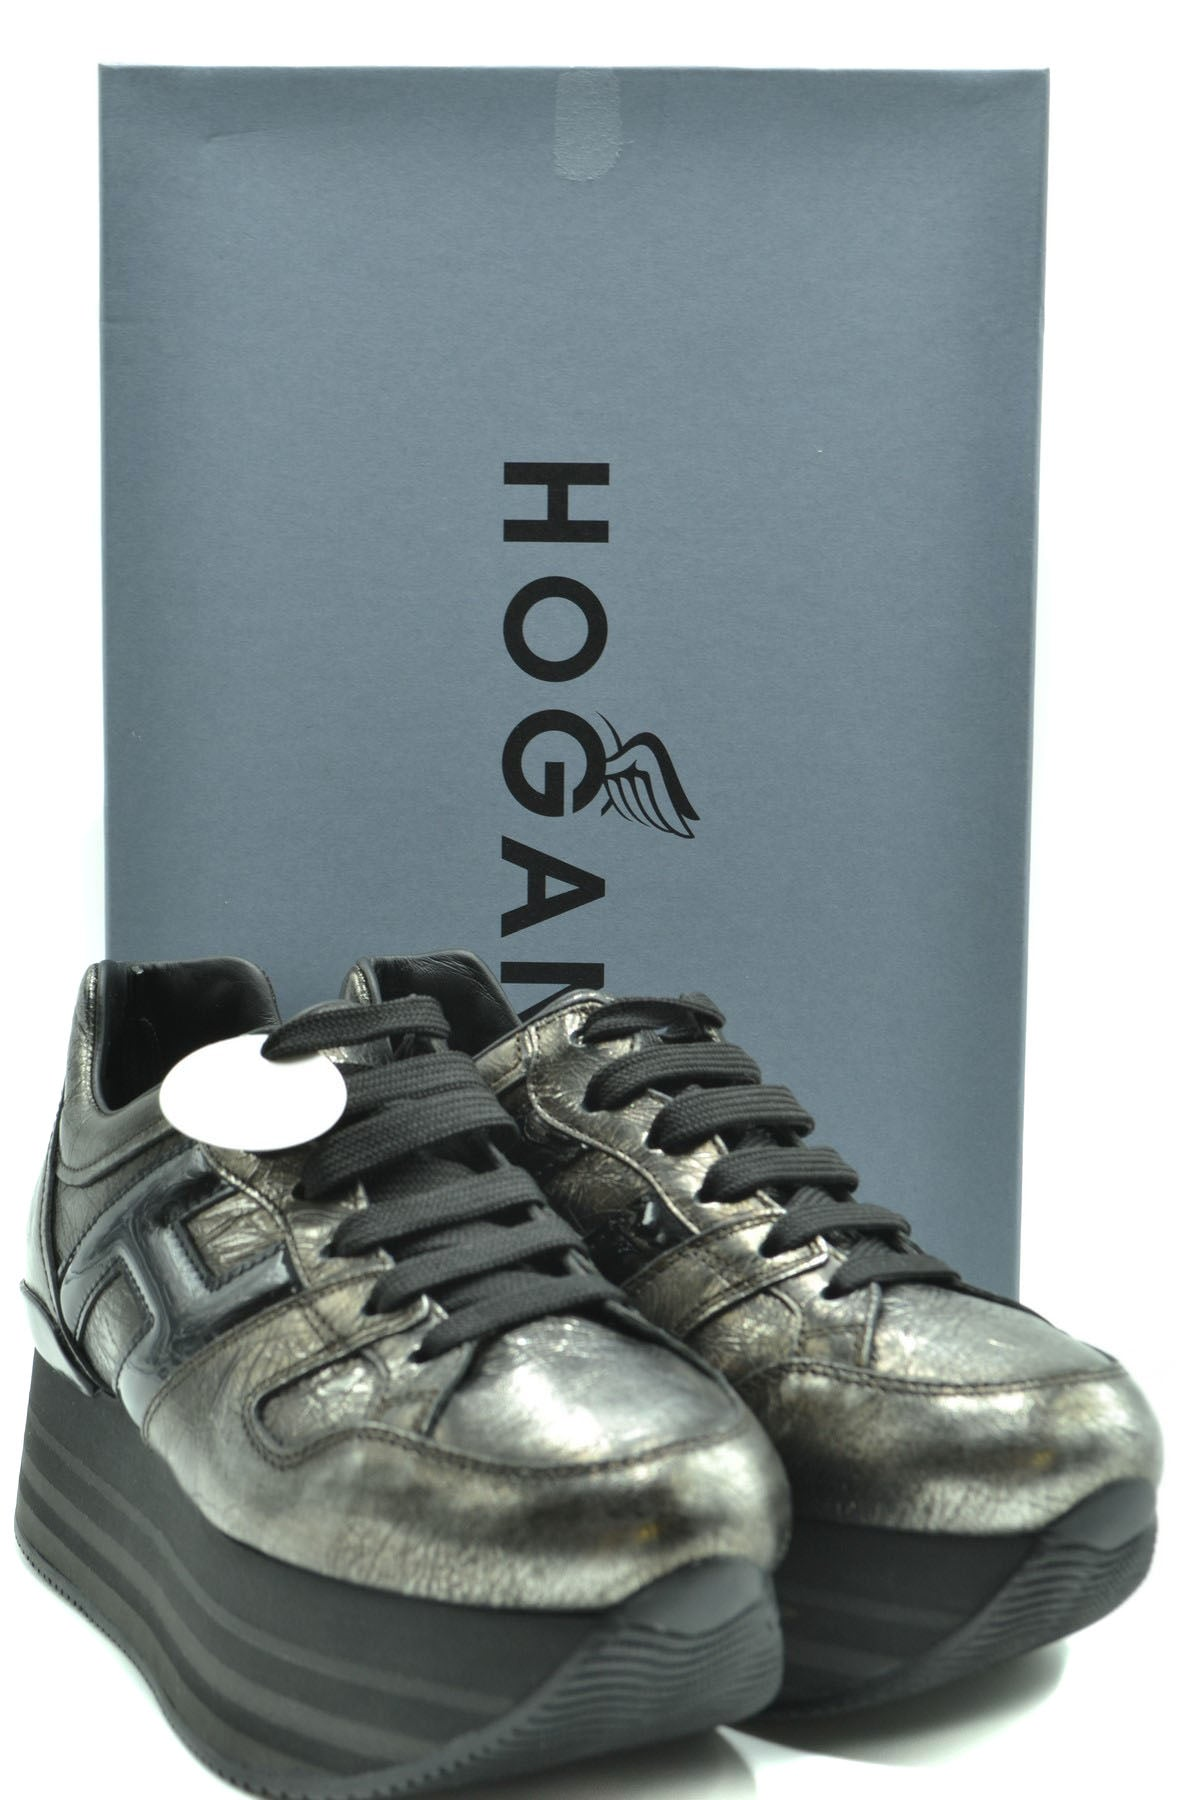 Shoes Hogan-Sports & Entertainment - Sneakers-Product Details Terms: New With LabelMain Color: GrayType Of Accessory: ShoesSeason: Fall / WinterMade In: ItalyGender: WomanSize: EuComposition: Leather 100%Year: 2020Manufacturer Part Number: Hxw2830T548Jd81642-Keyomi-Sook